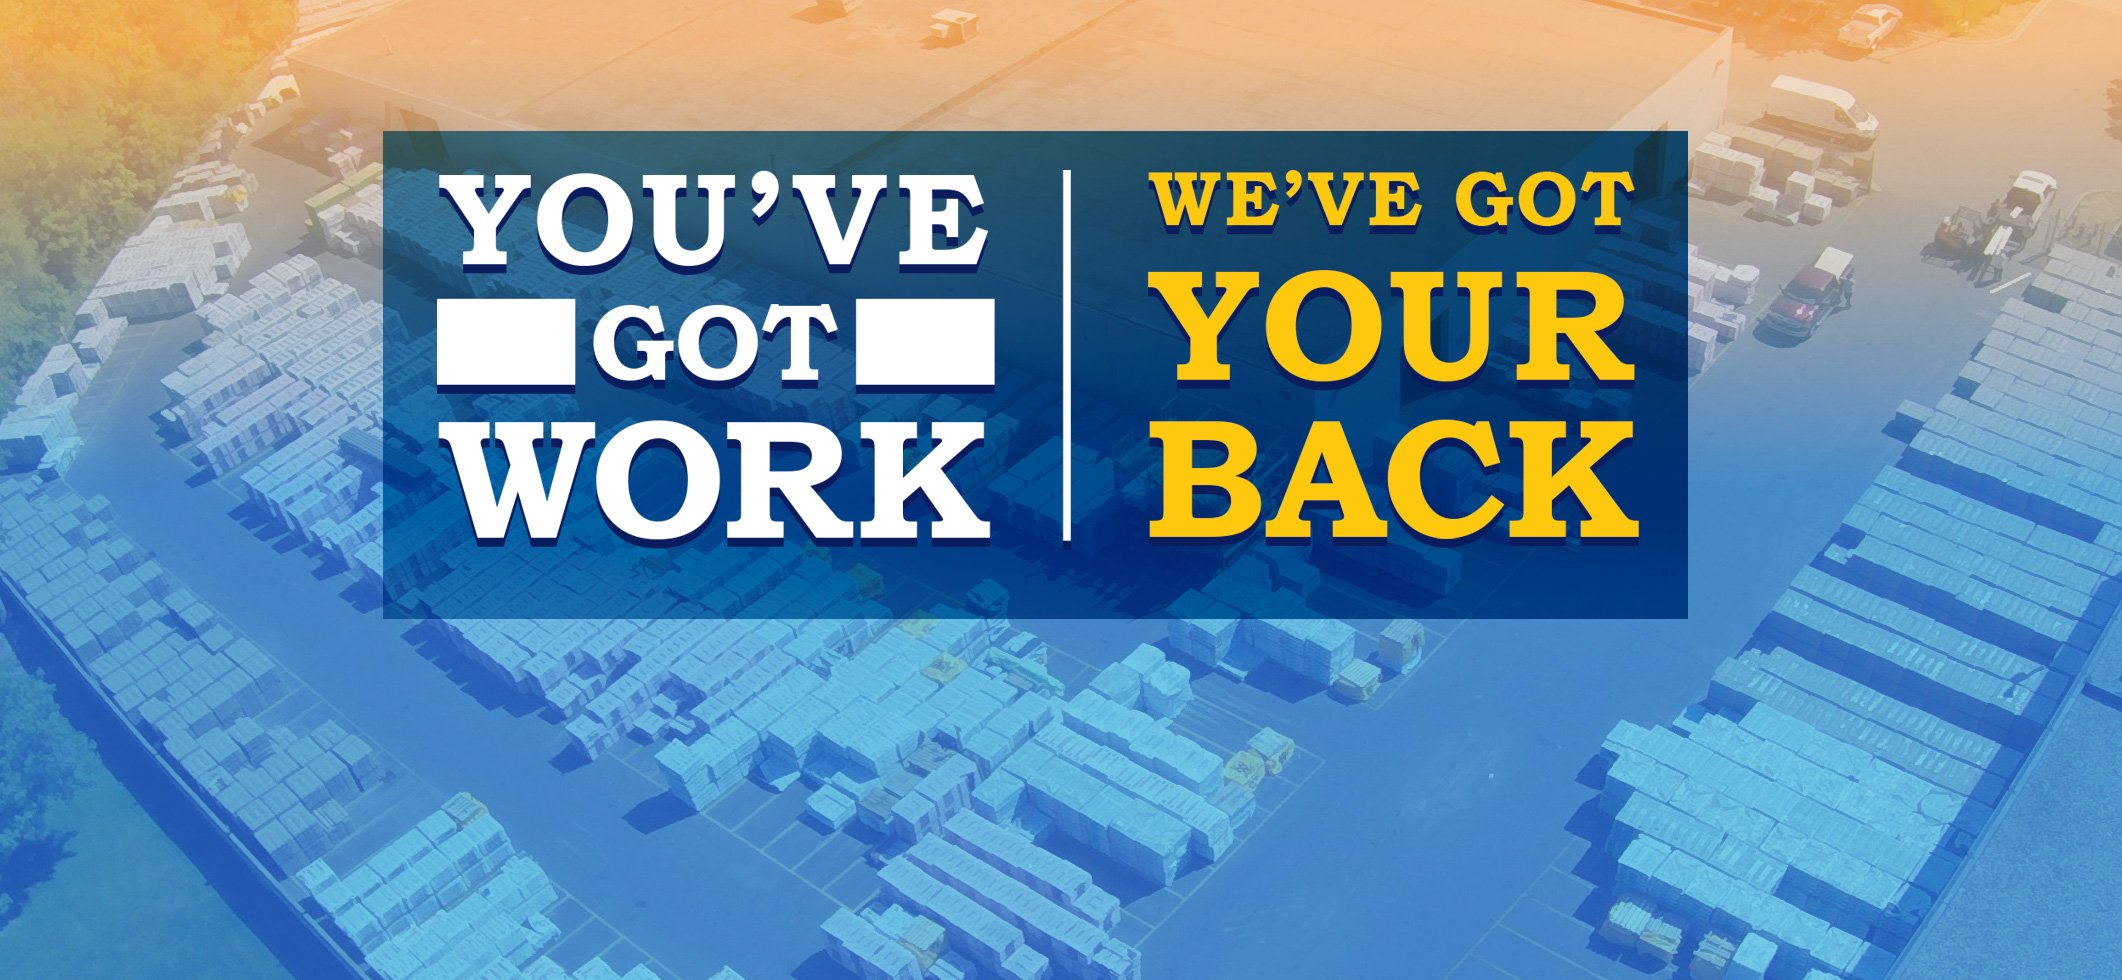 You've Got Work. We've Got Your Back.